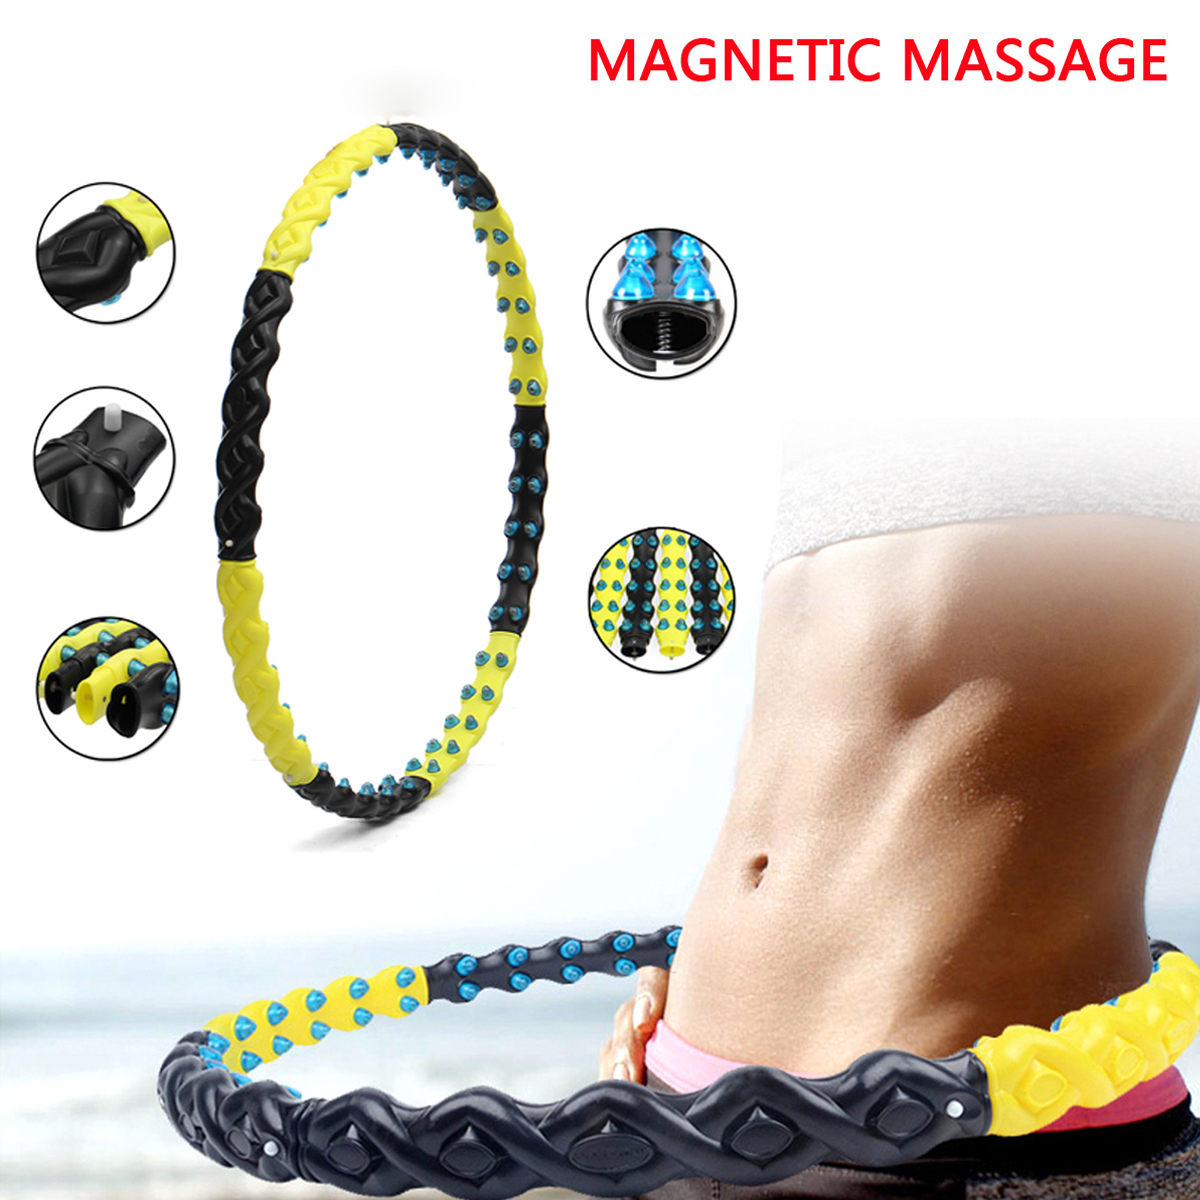 Detachable 80 Massage Balls Health Circle Magnet Weighted Fitness Exercise Diet Body Building Equipment korea orginal health hoop passion magnetic weighted hula hoop massage exercise fitness advance step 4 made in korea